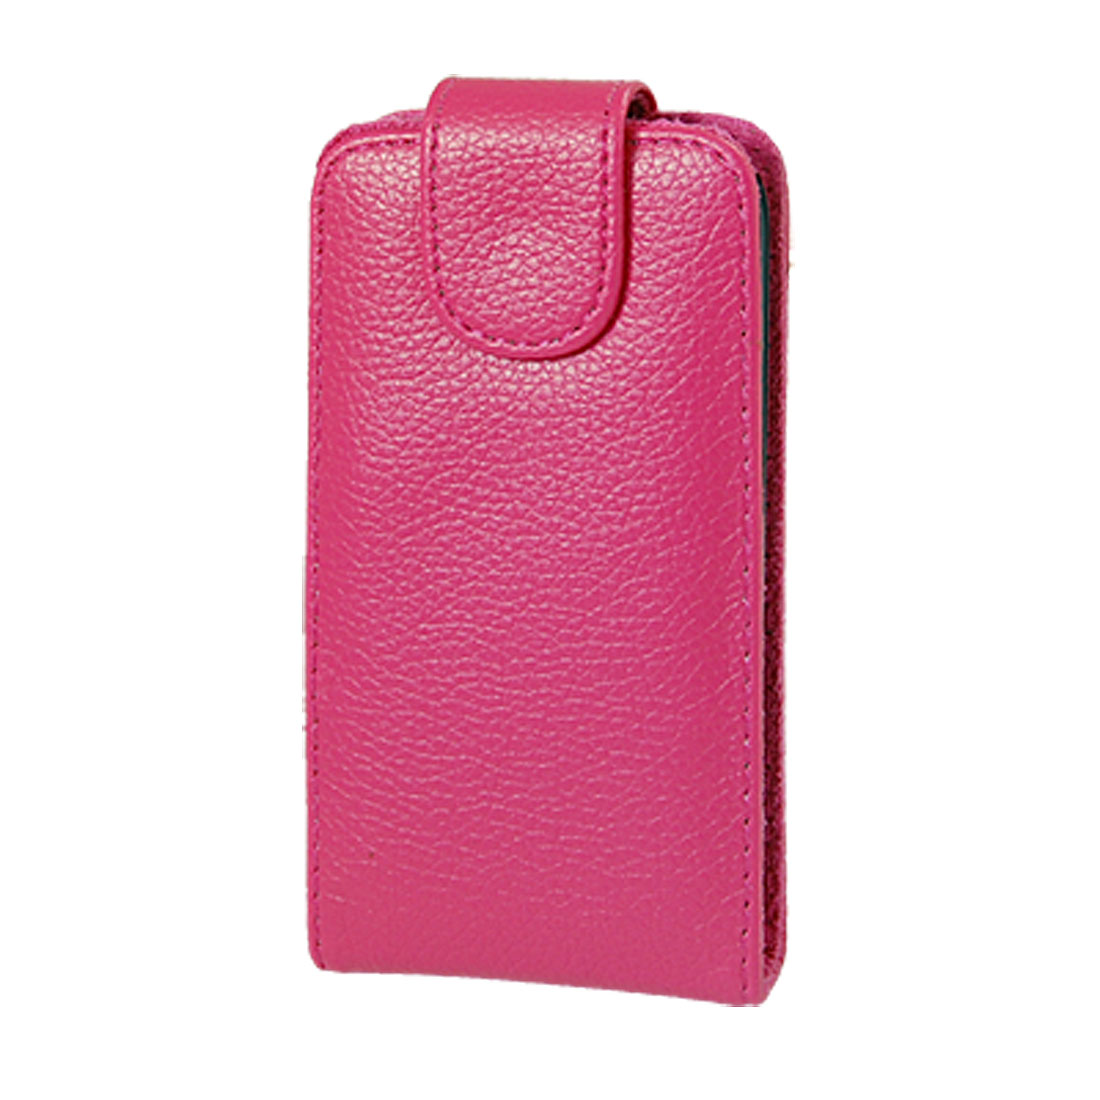 Fuchsia Textured Faux Leather Flap Pouch Case for iPhone 3G